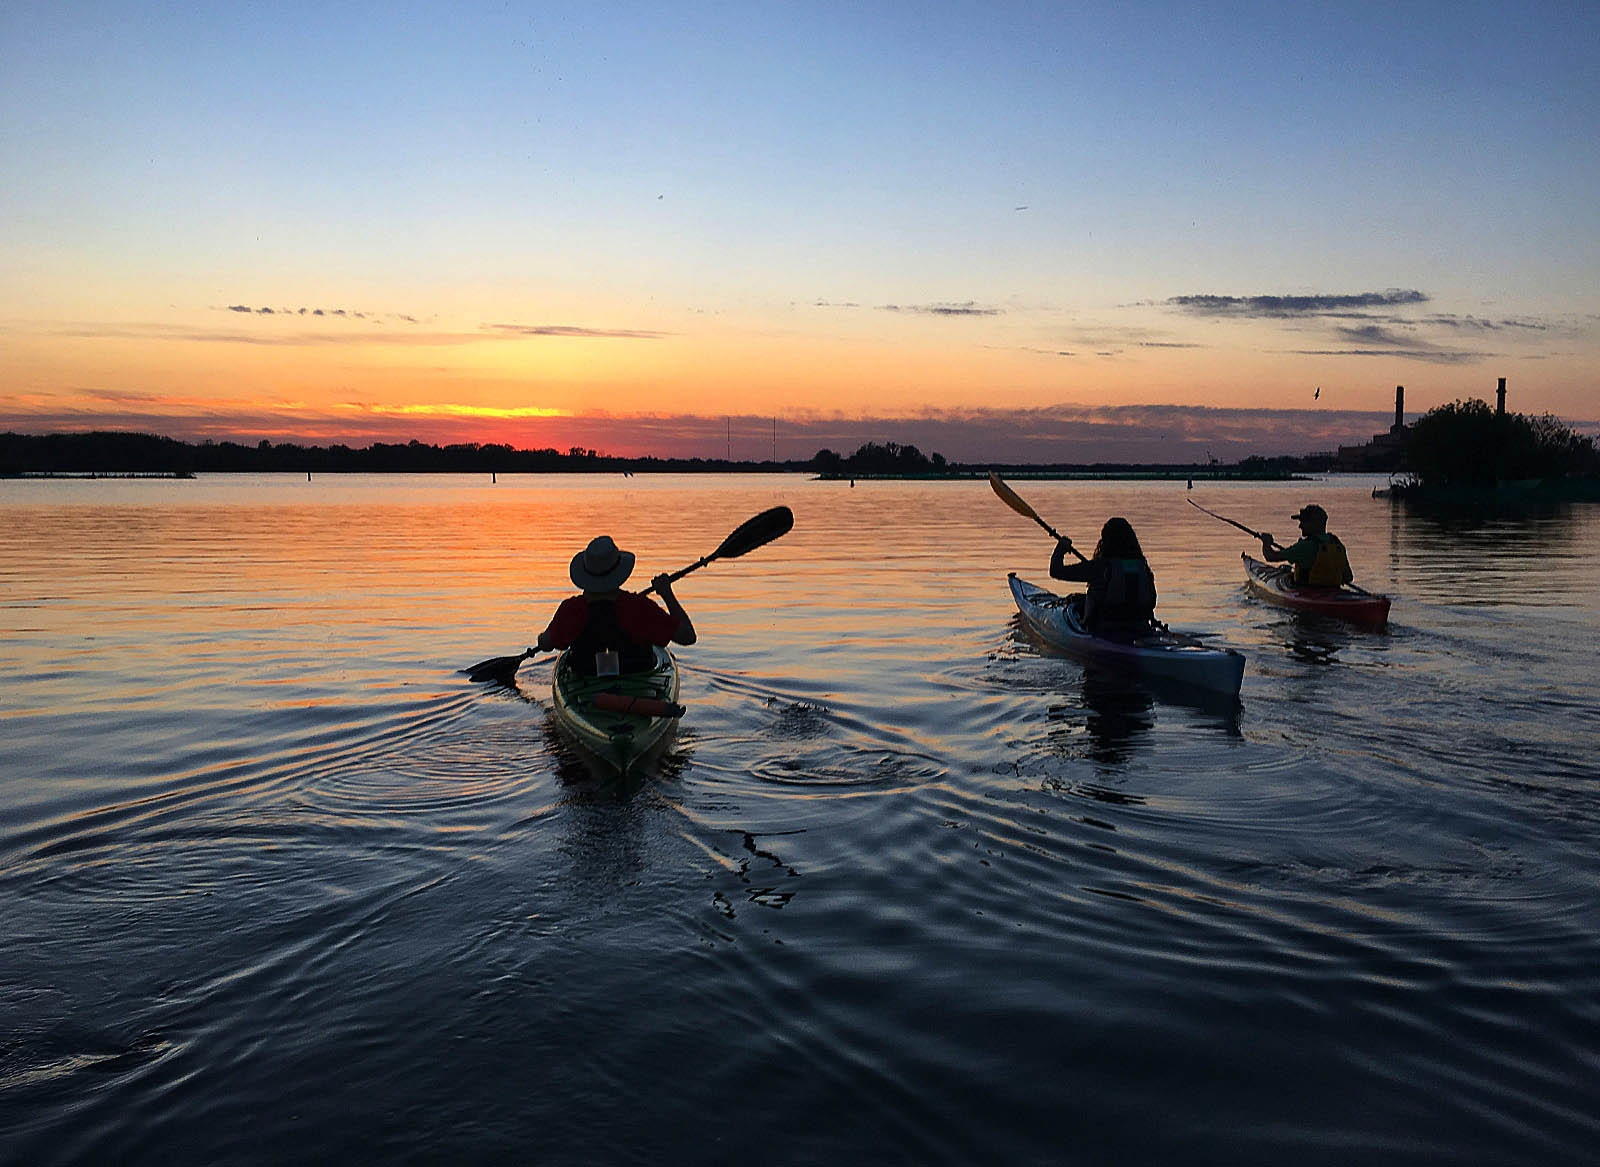 Kayakers on the Niagara River take in the sunset near Strawberry Island.